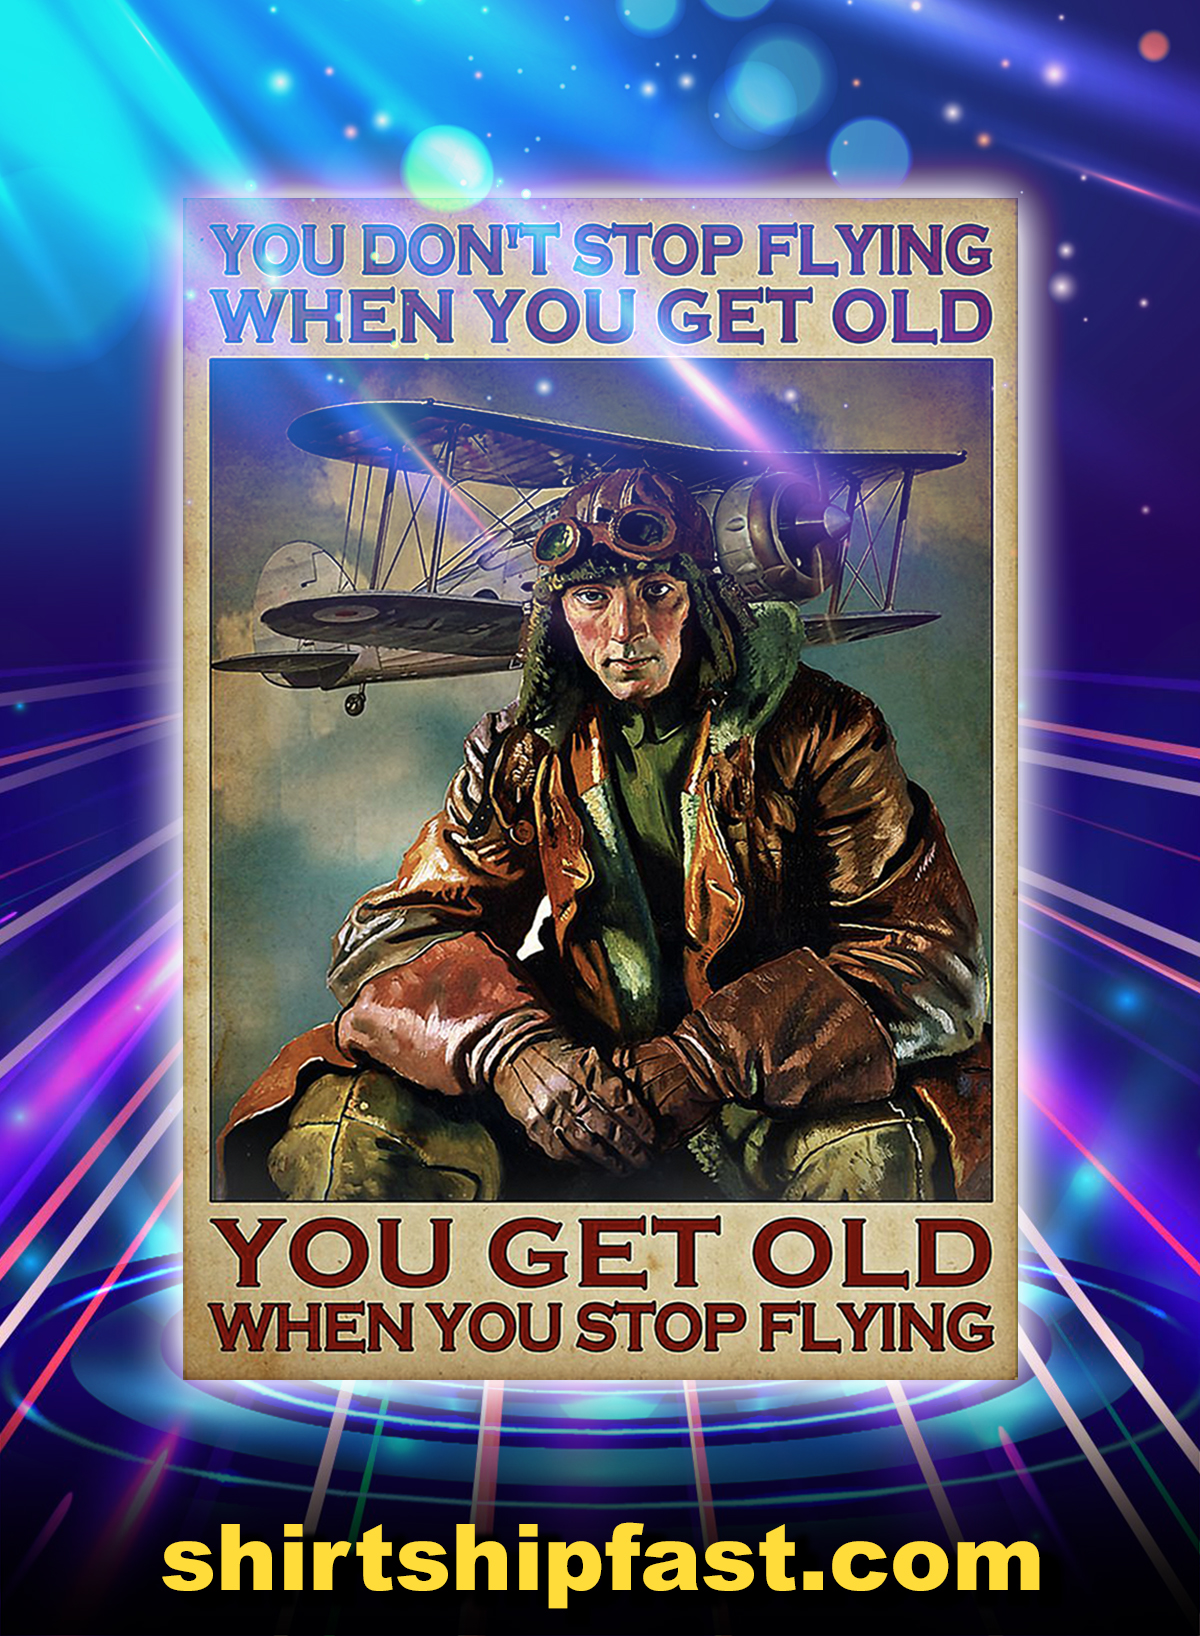 PILOT you don't stop flying when you get old poster - A1